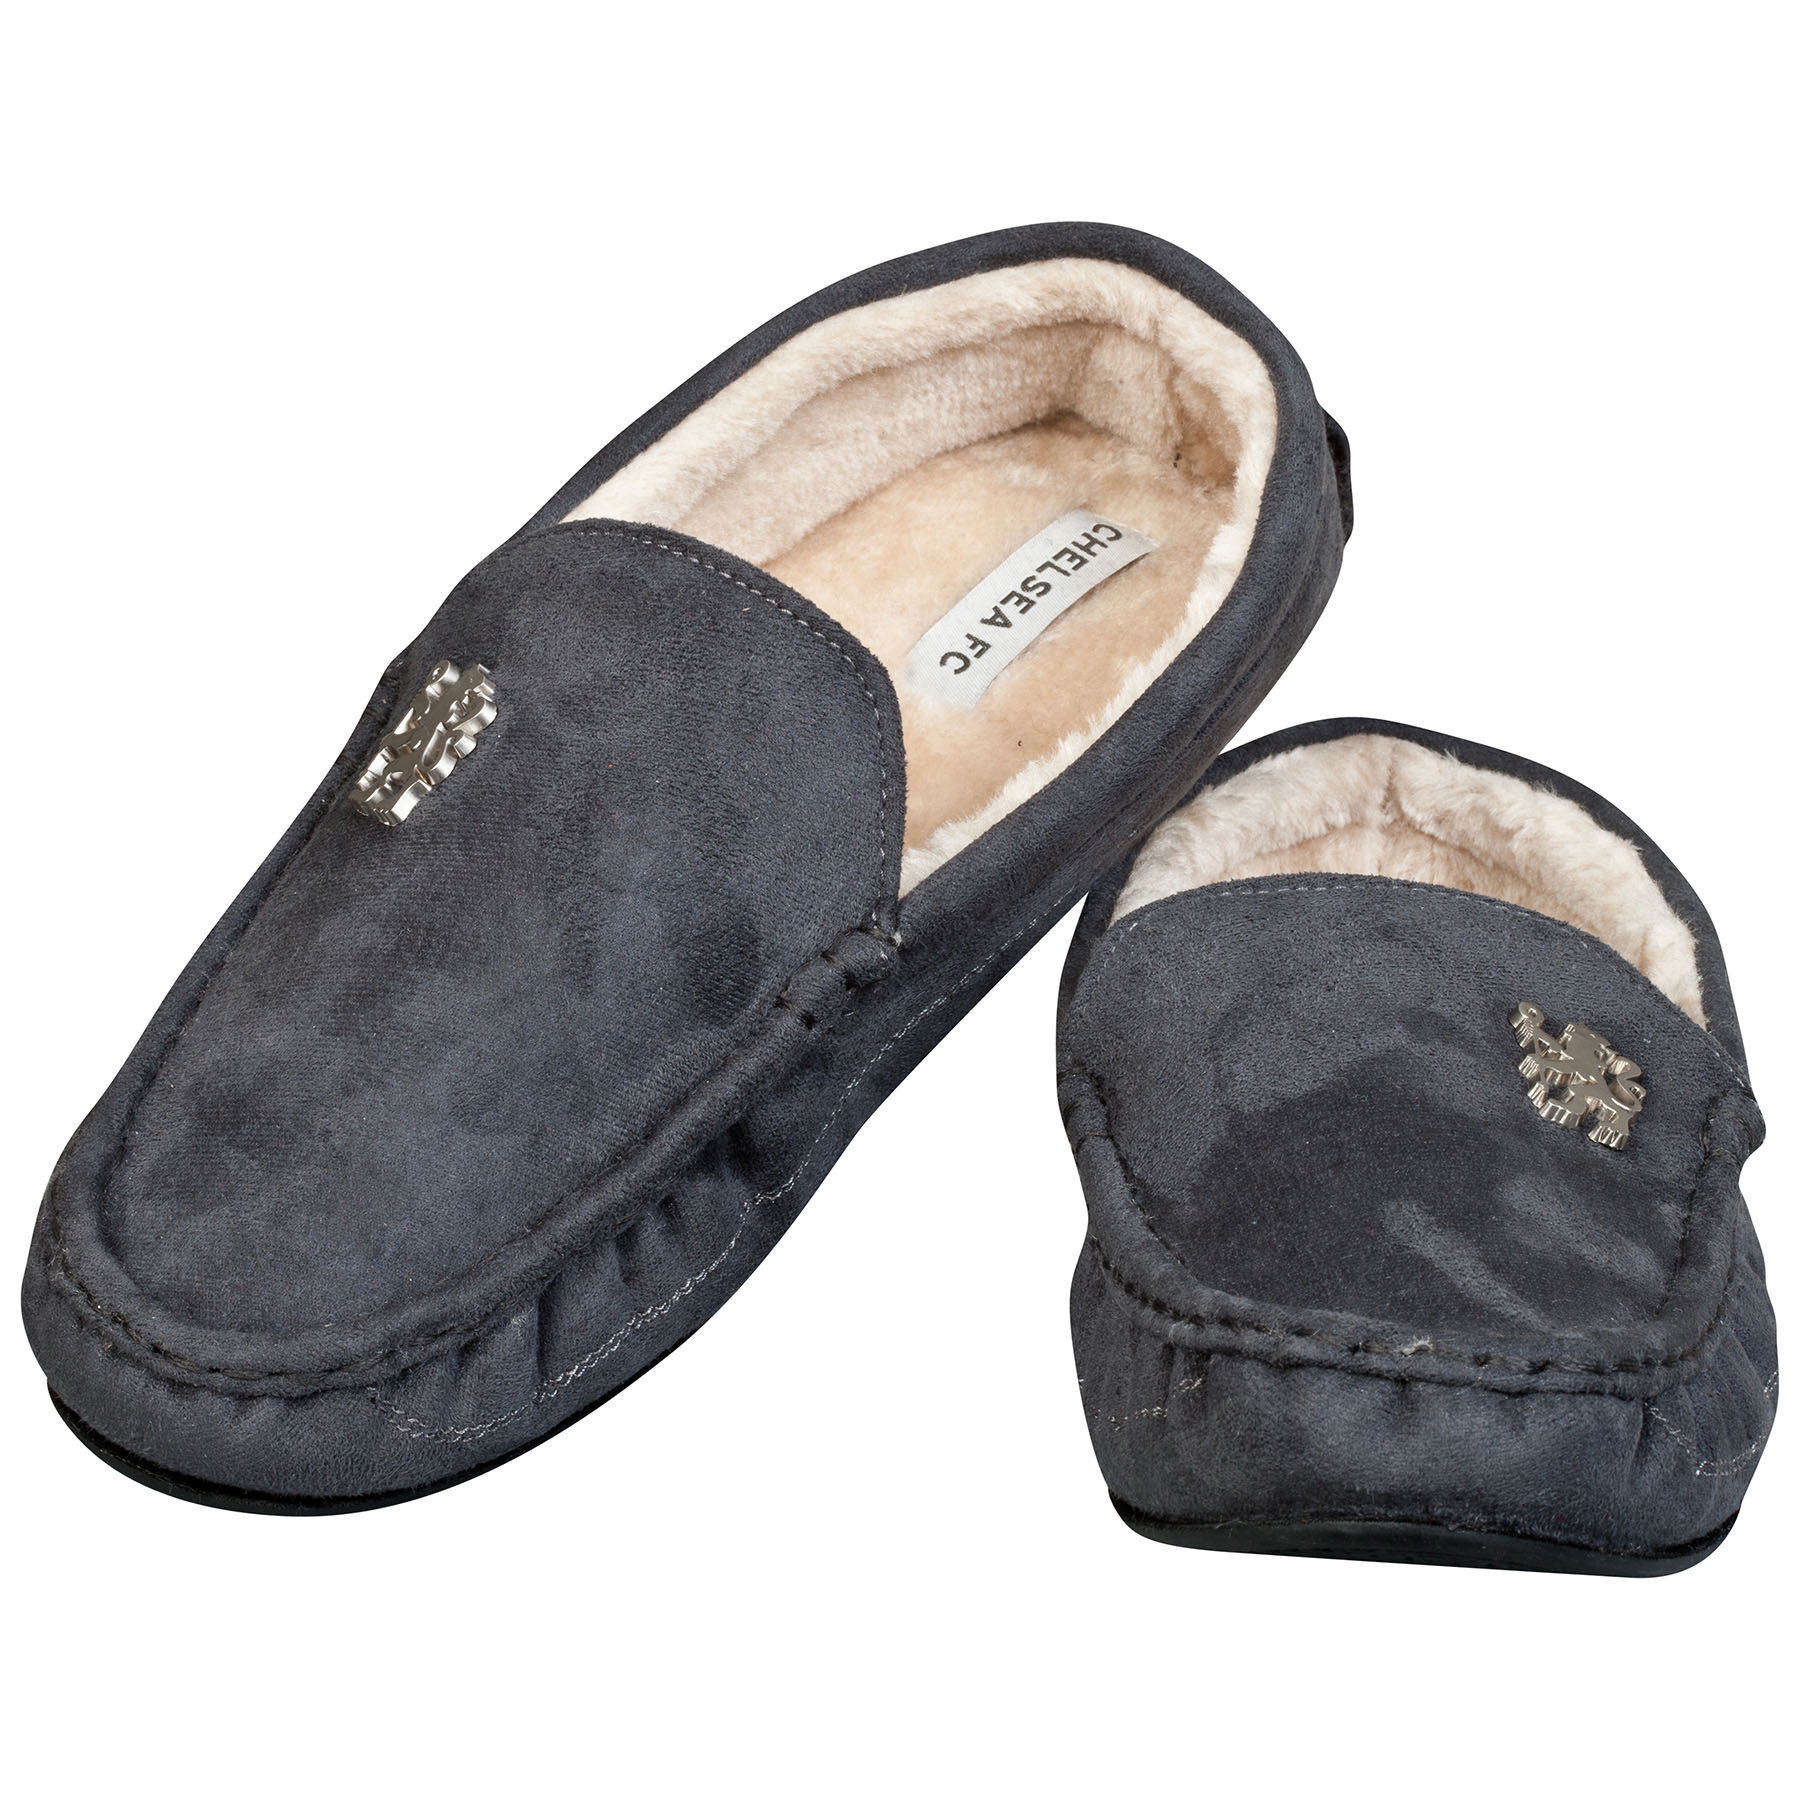 Chelsea Moccasin Slippers - Charcoal - Mens